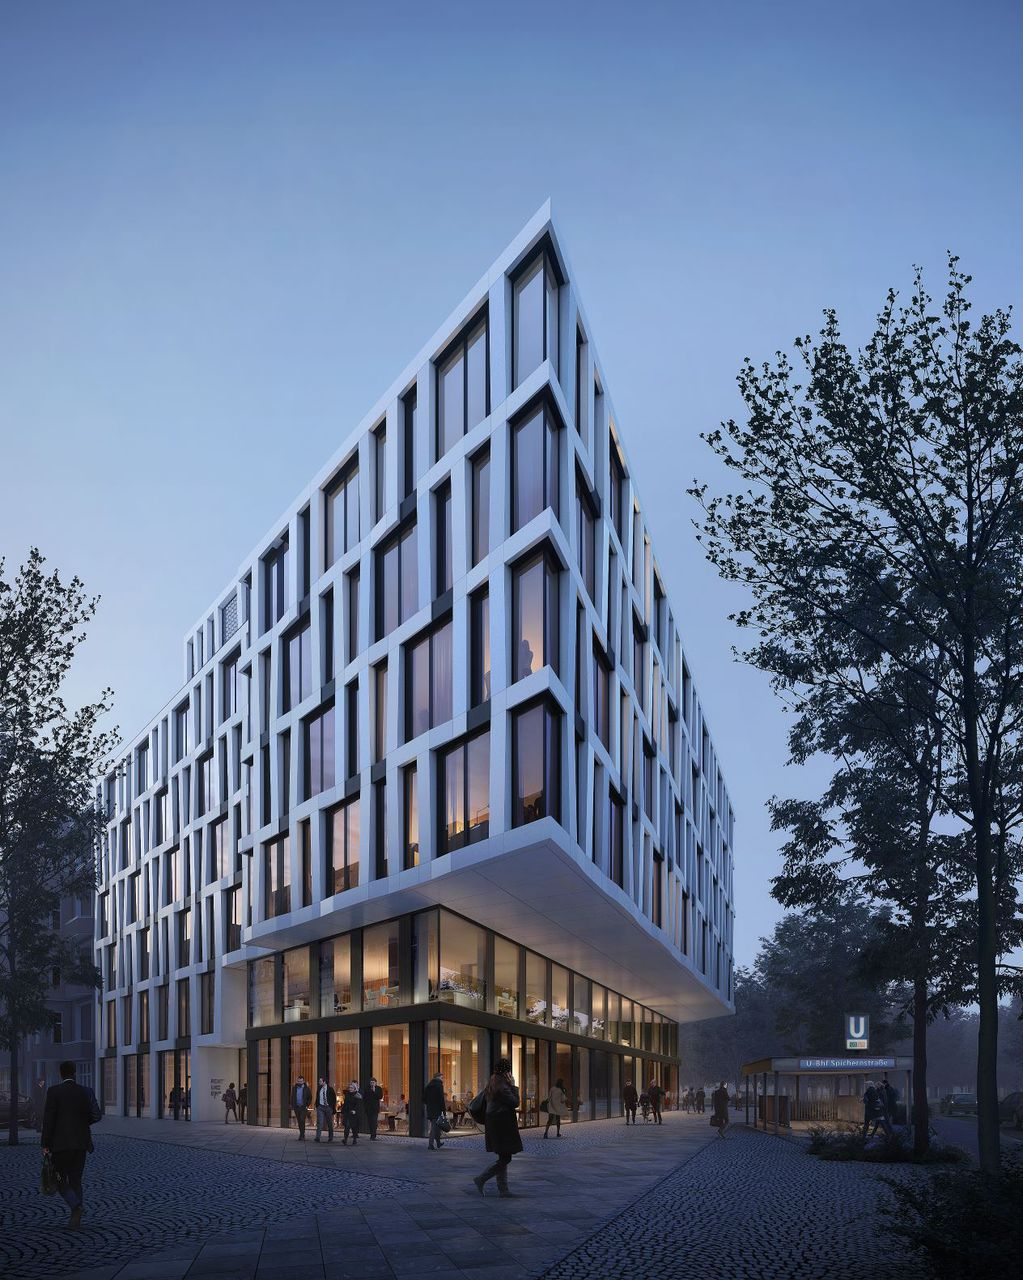 Eike Becker Architekten Berlin | Projects & Construction | Page 230 | Skyscrapercity